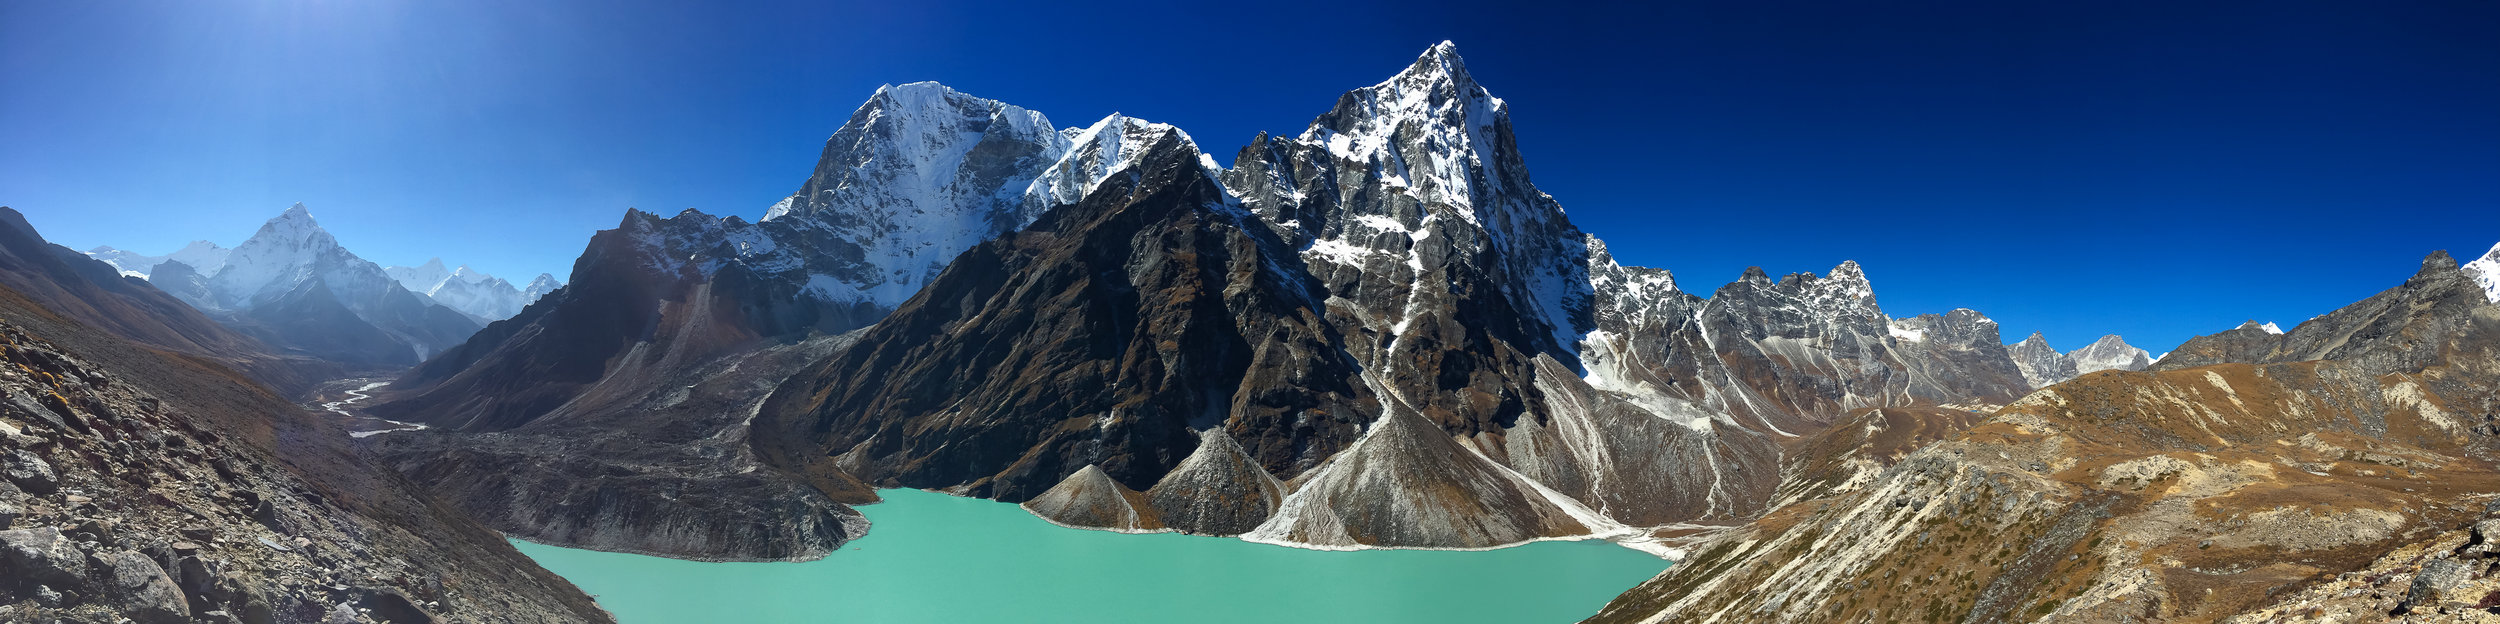 Left mountain right behind Chola Lake is the Taboche Peak (6,495m), and on the right, Chola Tse (6,440m)